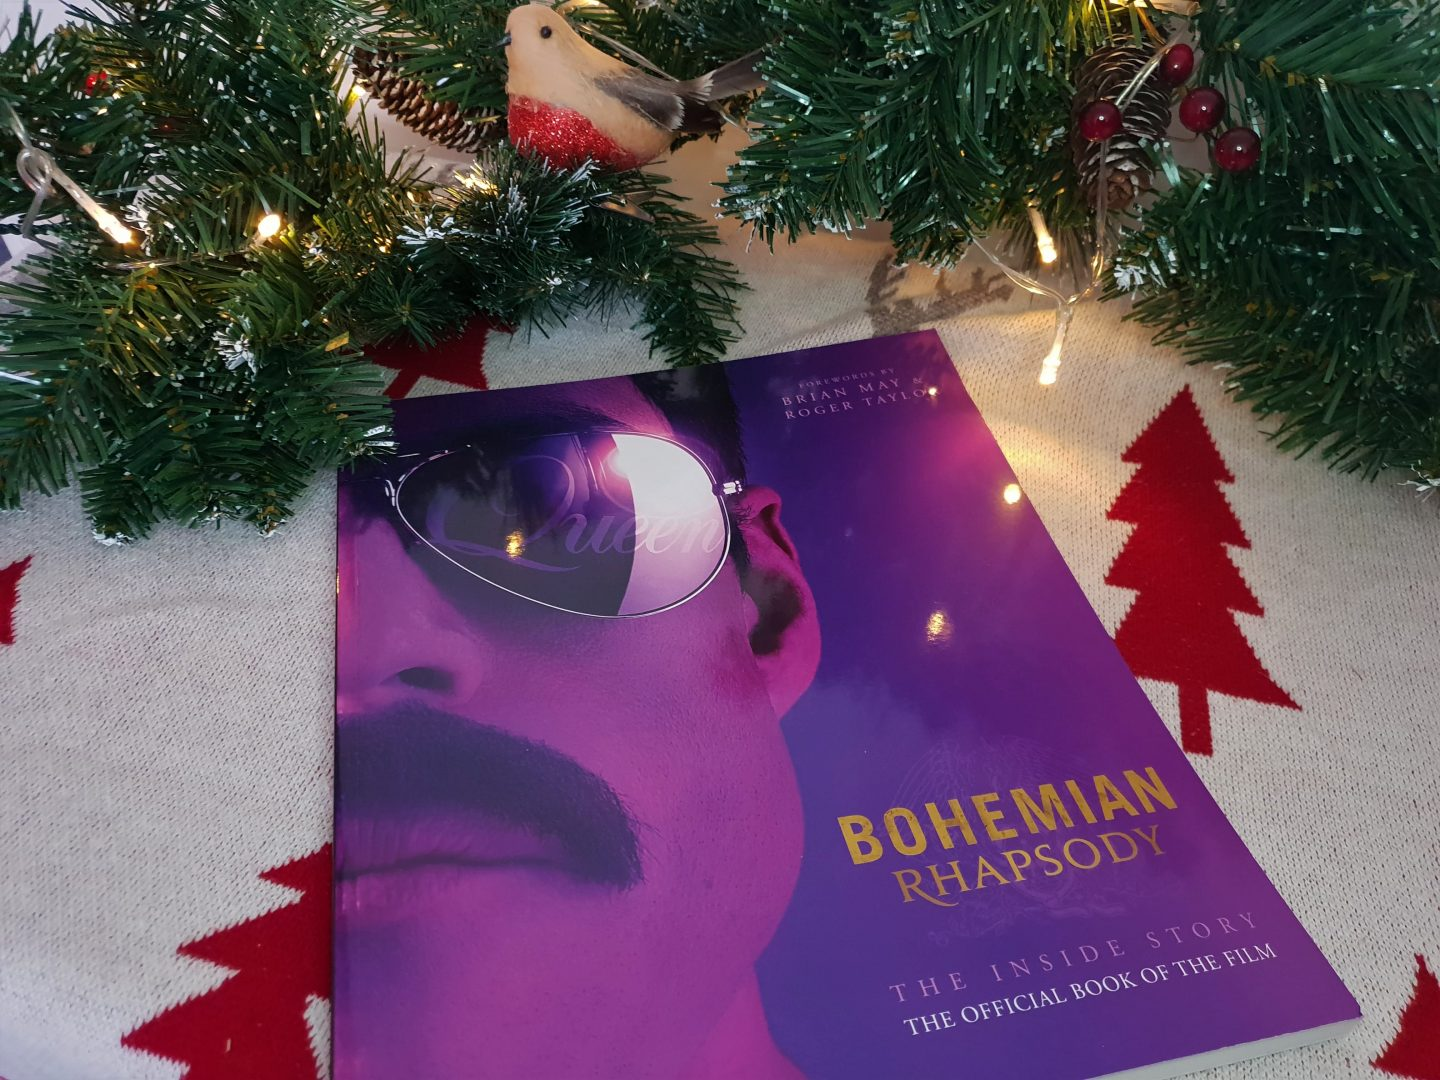 Bohemian Rhapsody official movie book